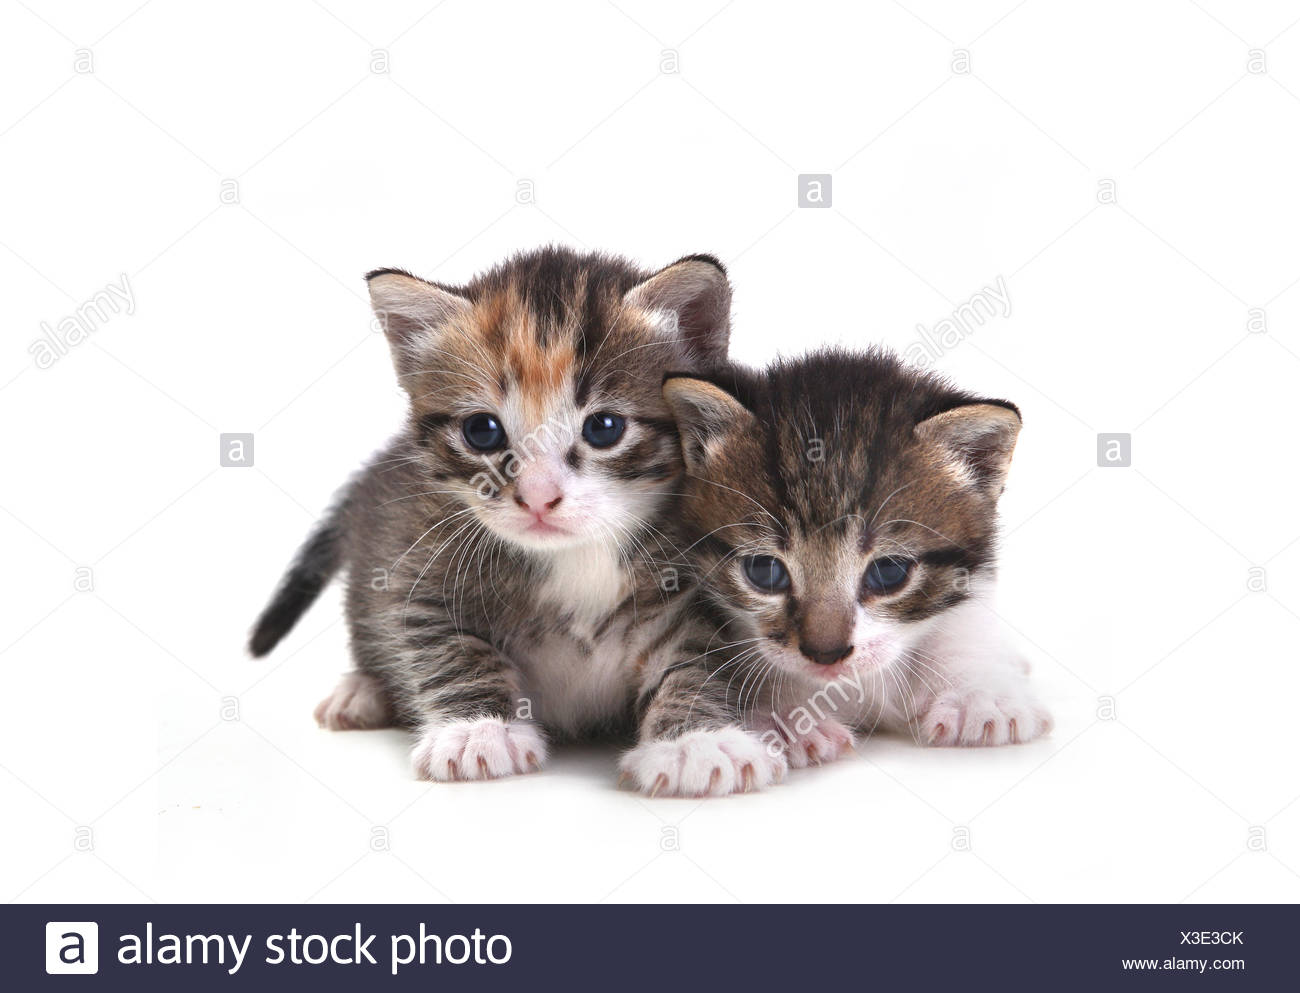 Cute Newborn Baby Kittens Easily Isolated On White Stock Photo Alamy